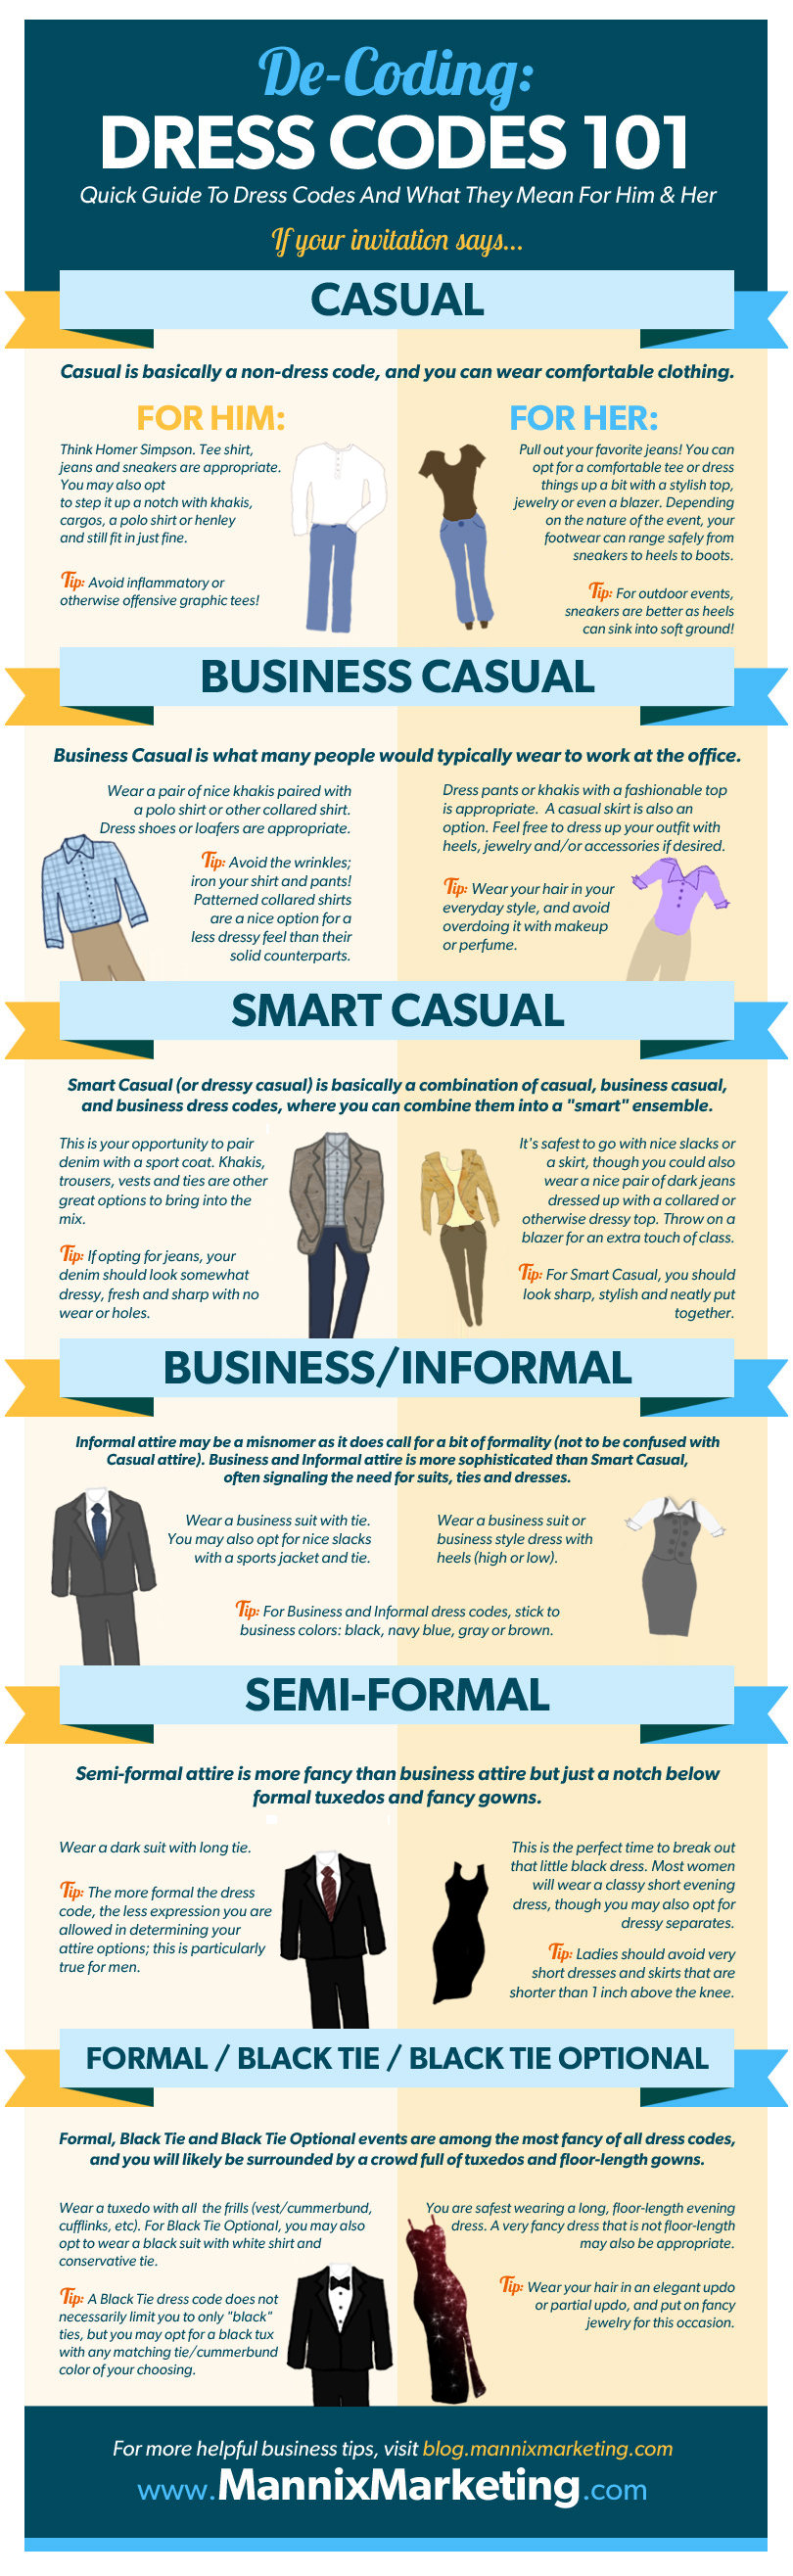 Infographic on the differences between different dress codes.